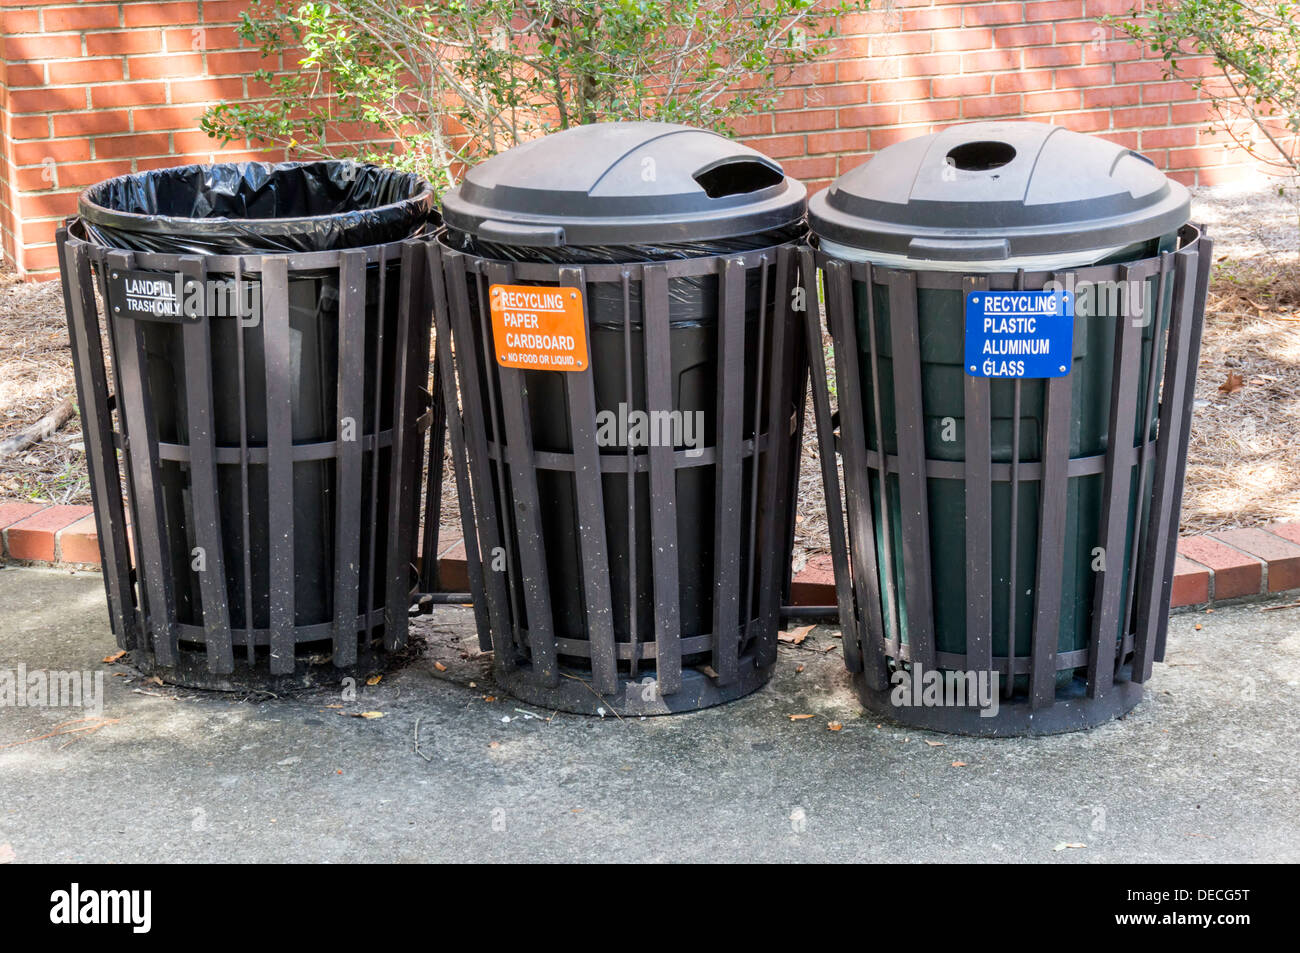 Large, durable exterior recycling and landfill trash cans receptacles. - Stock Image